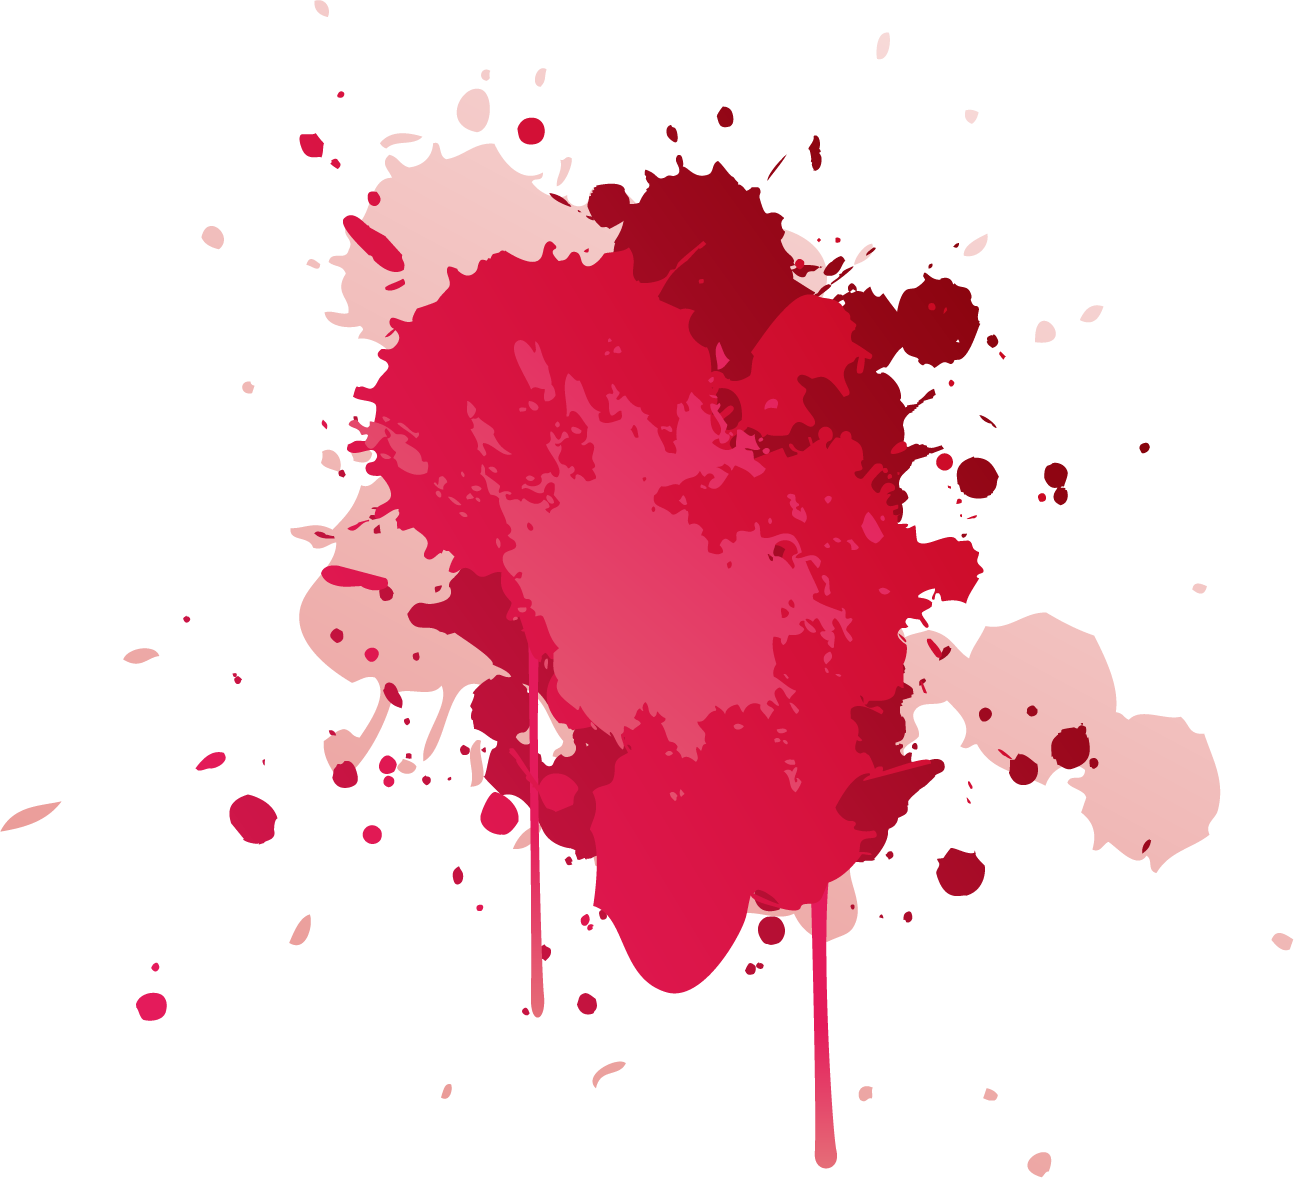 Blood splash png. Splatter images the art